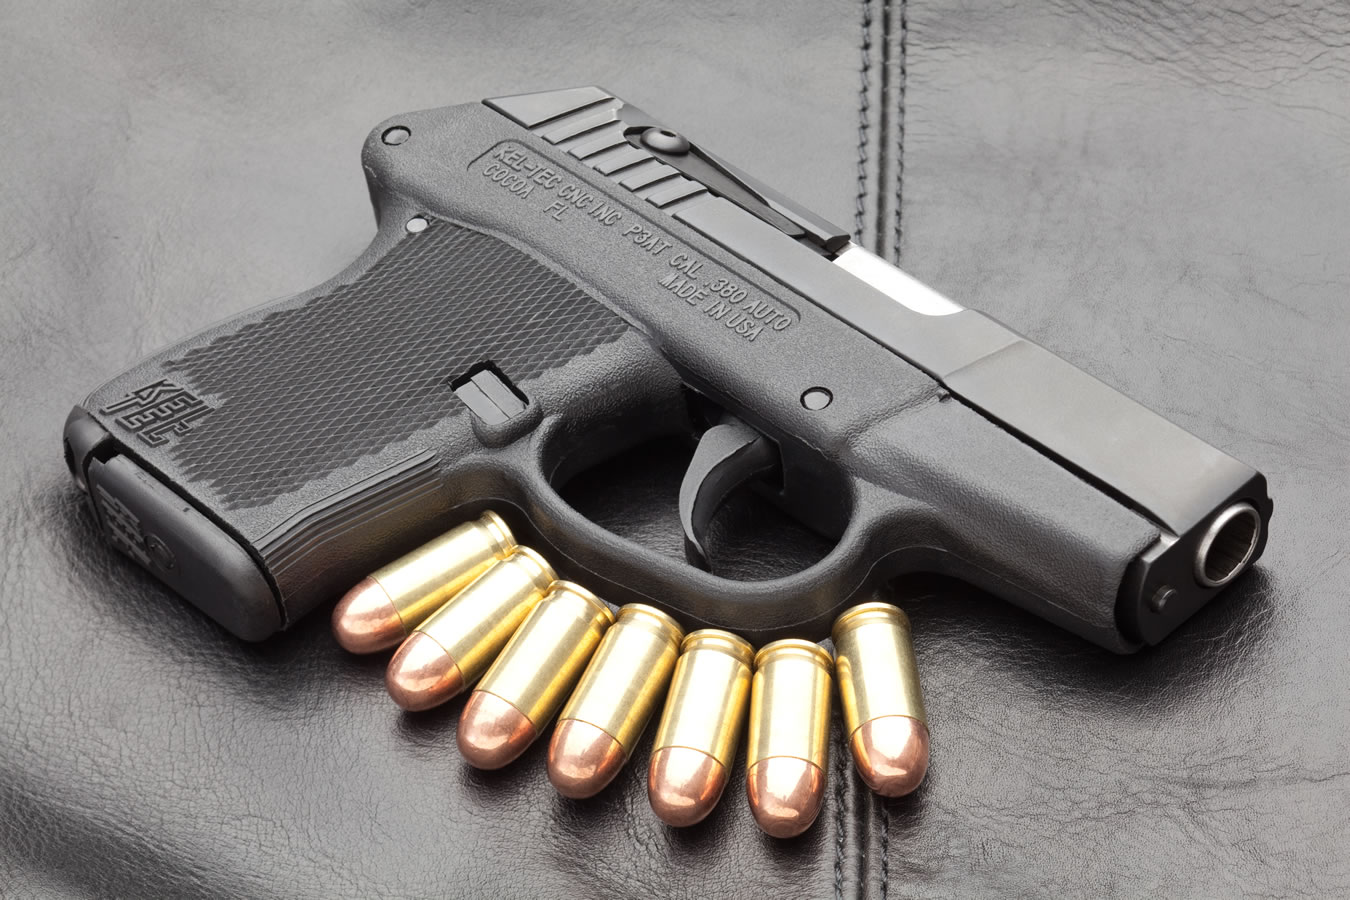 P-3AT 380ACP Carry Conceal Pistol